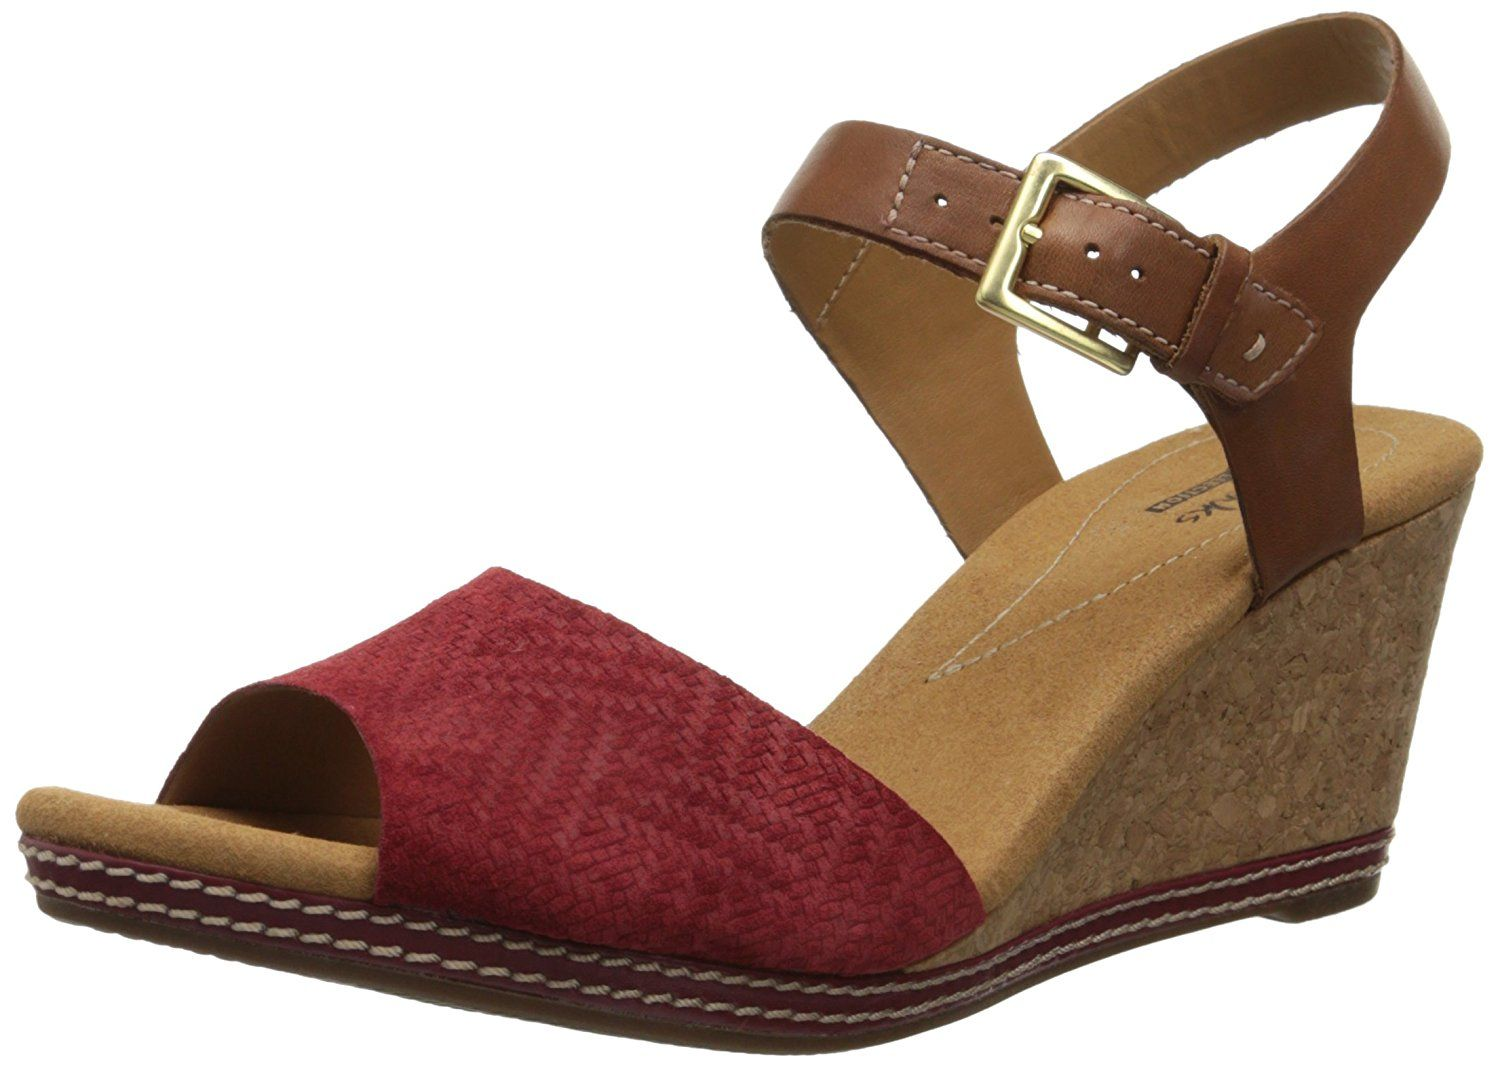 bd921ec95b0 Clarks Women s Helio Jet Wedge Sandal     Quickly view this special  product